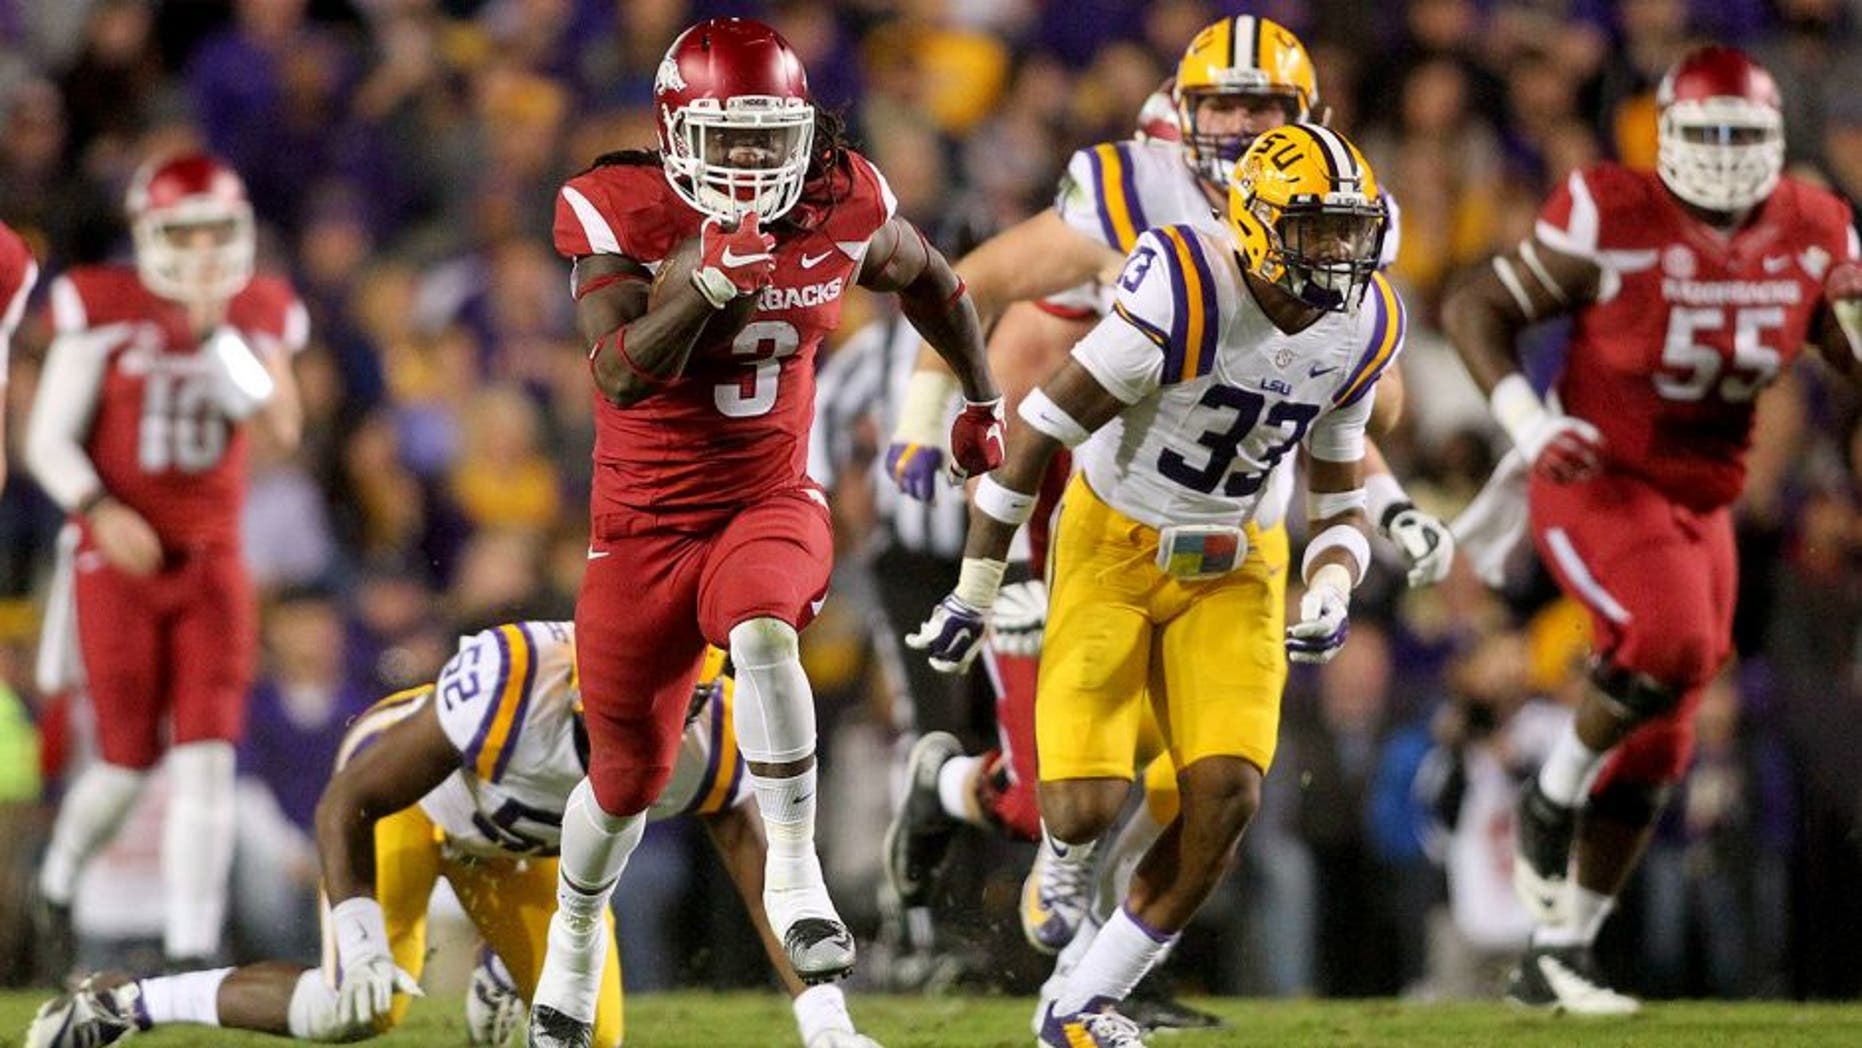 Nov 14, 2015; Baton Rouge, LA, USA; Arkansas Razorbacks running back Alex Collins (3) carries the ball to score a touchdown against the LSU Tigers in the first half at Tiger Stadium. Mandatory Credit: Crystal LoGiudice-USA TODAY Sports